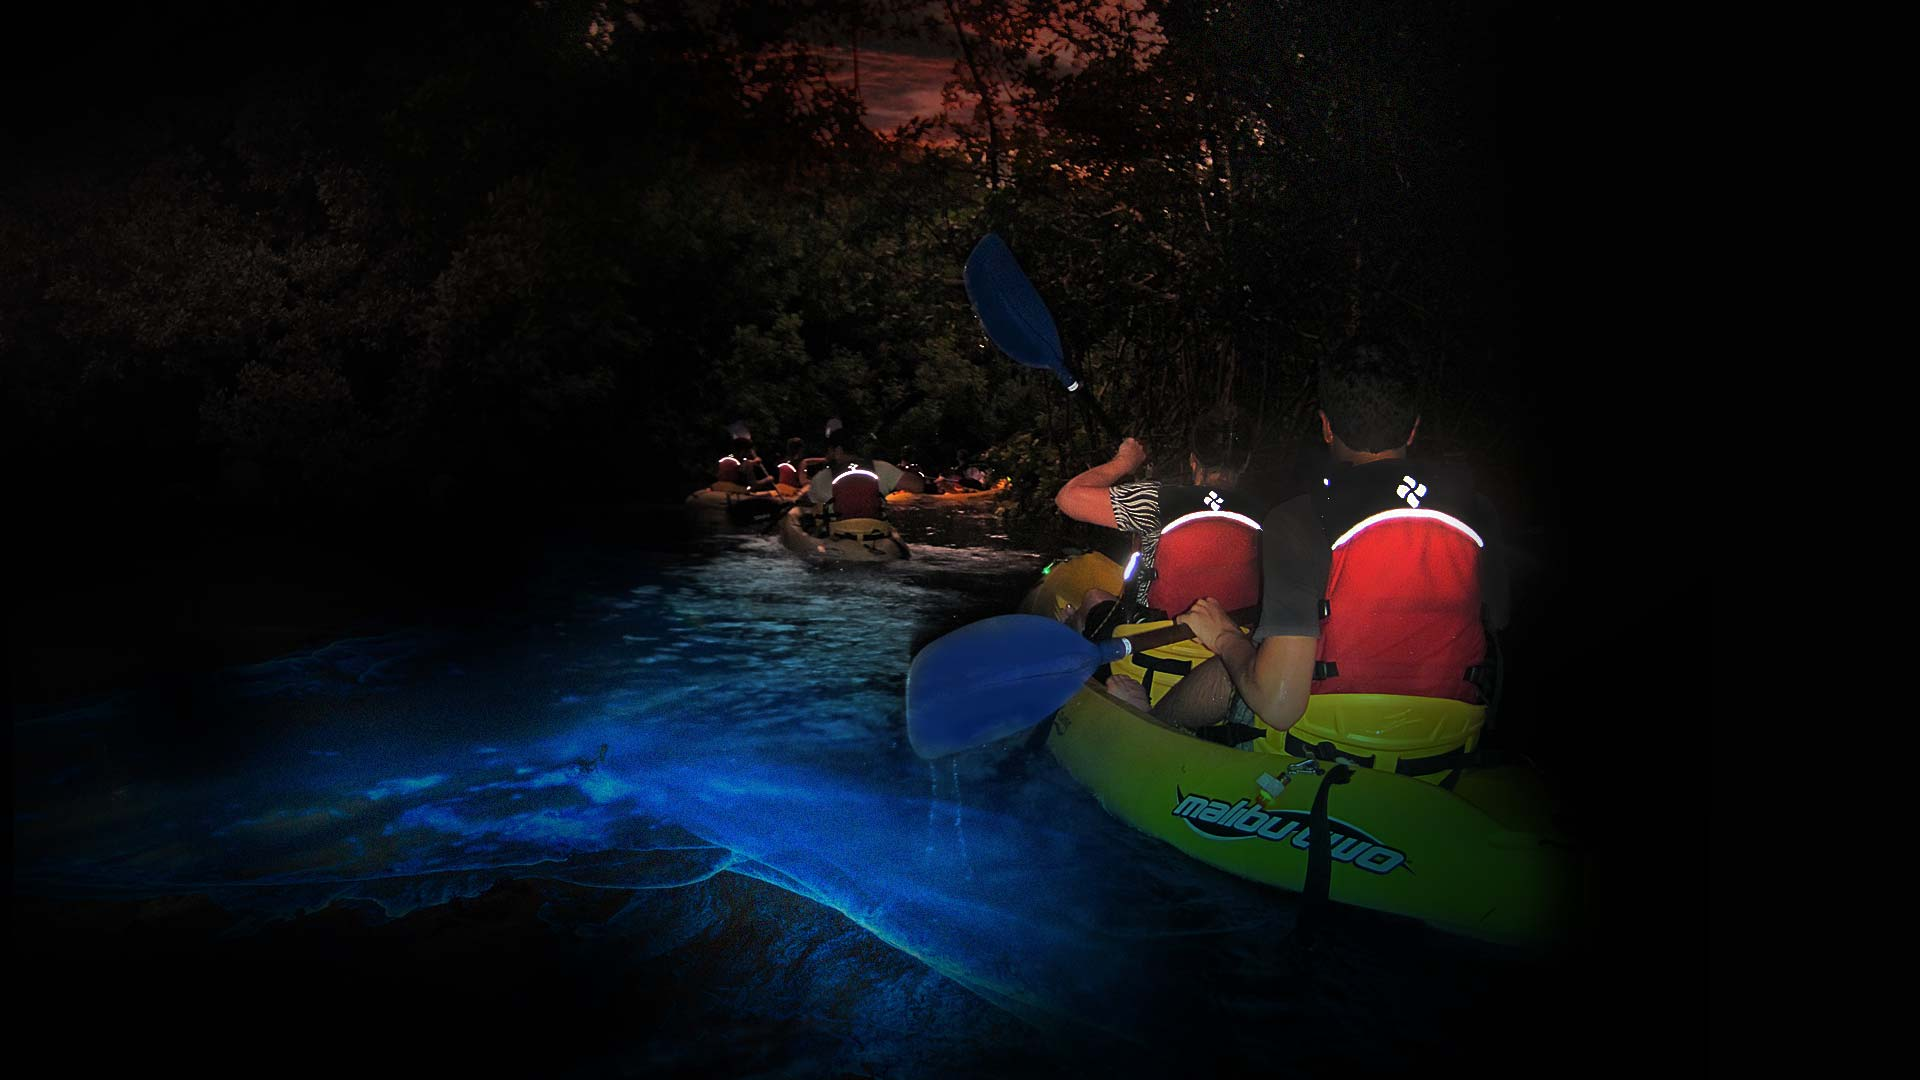 Kayakers entering the mangrove channel of the Fajardo Bio Bay Bioluminescent Bay Puerto Rico, with Kayaking Puerto Rico Bioluminescence Kayak Tour